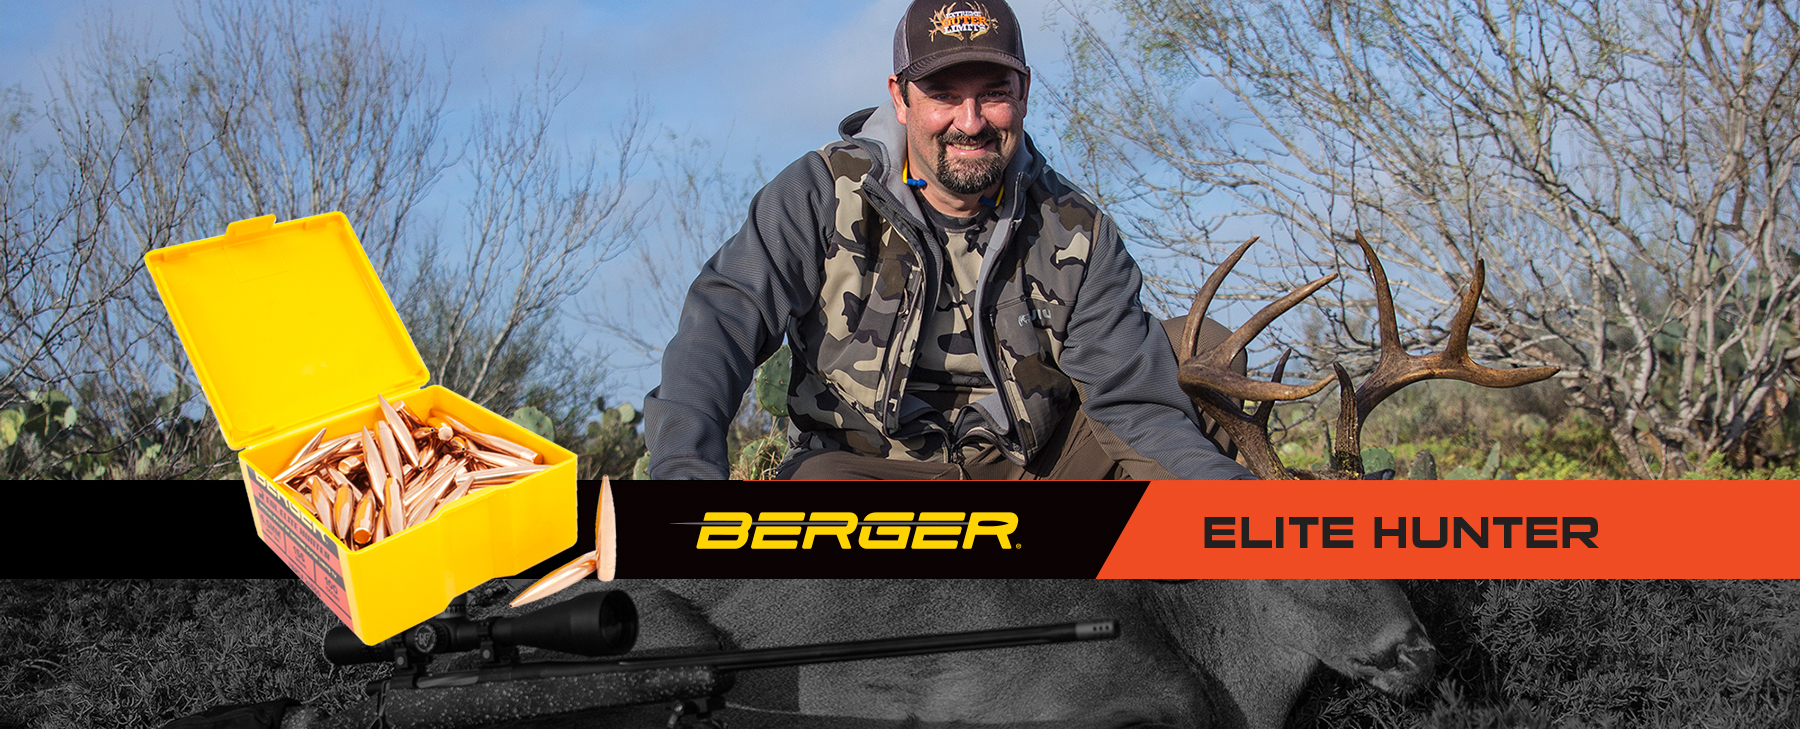 Berger Extreme Outer Limits Elite Hunter Bullet line